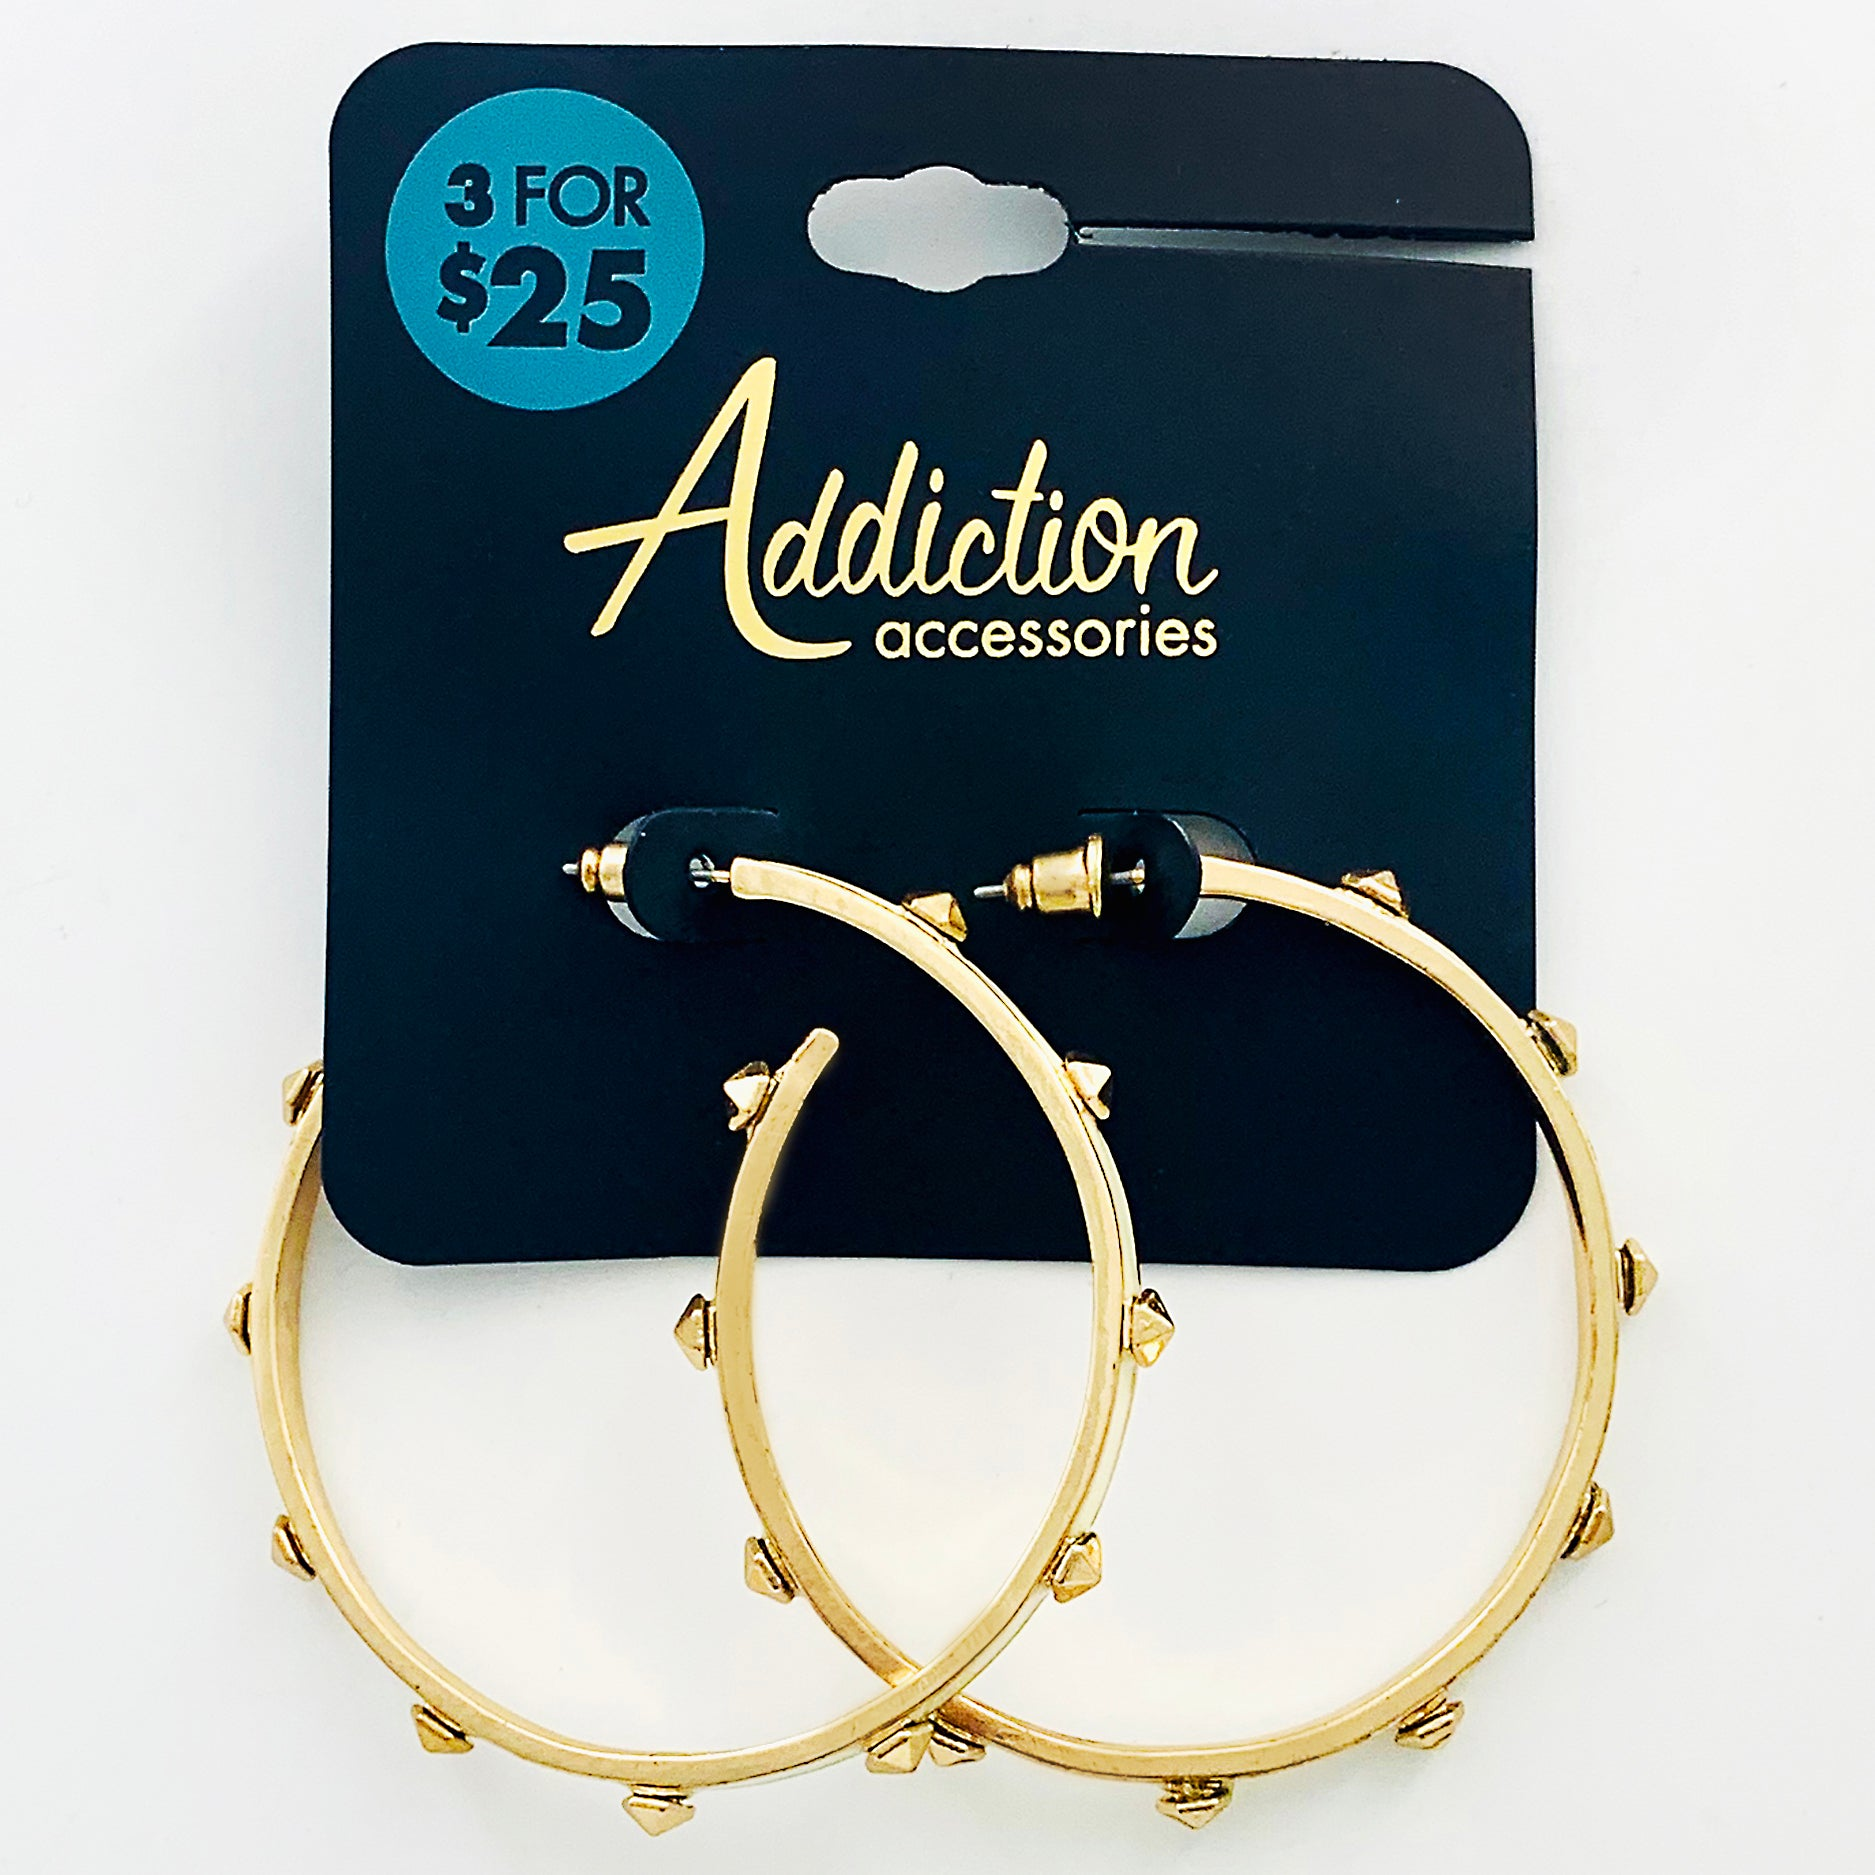 Hoop earrings with white enamel and gold studs